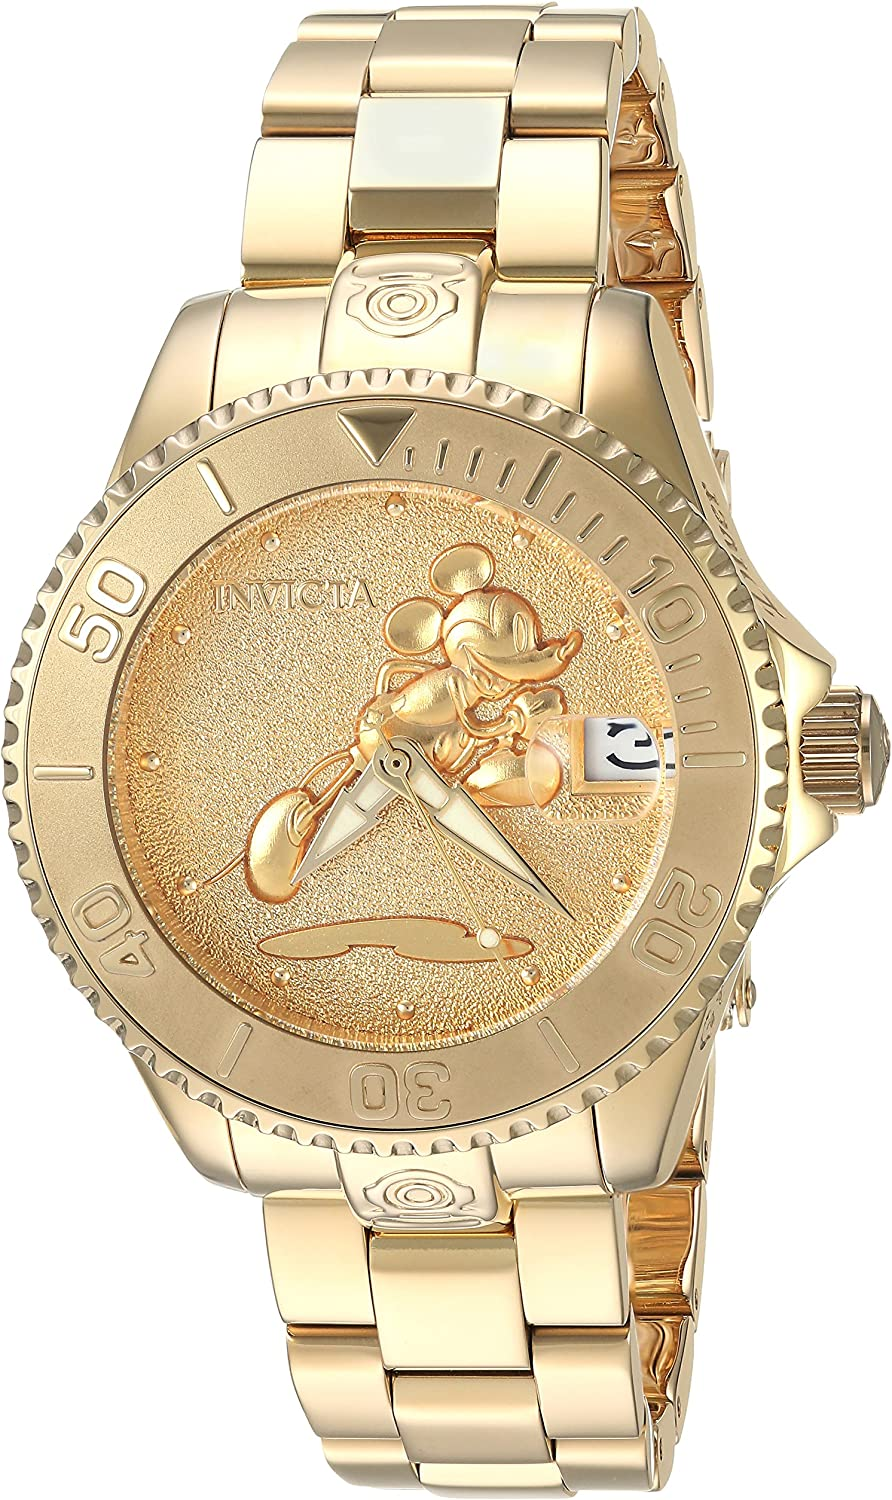 Invicta Women s Disney Limited Edition Automatic-self-Wind Watch with Stainless-Steel Strap, Gold, 18 Model 24533